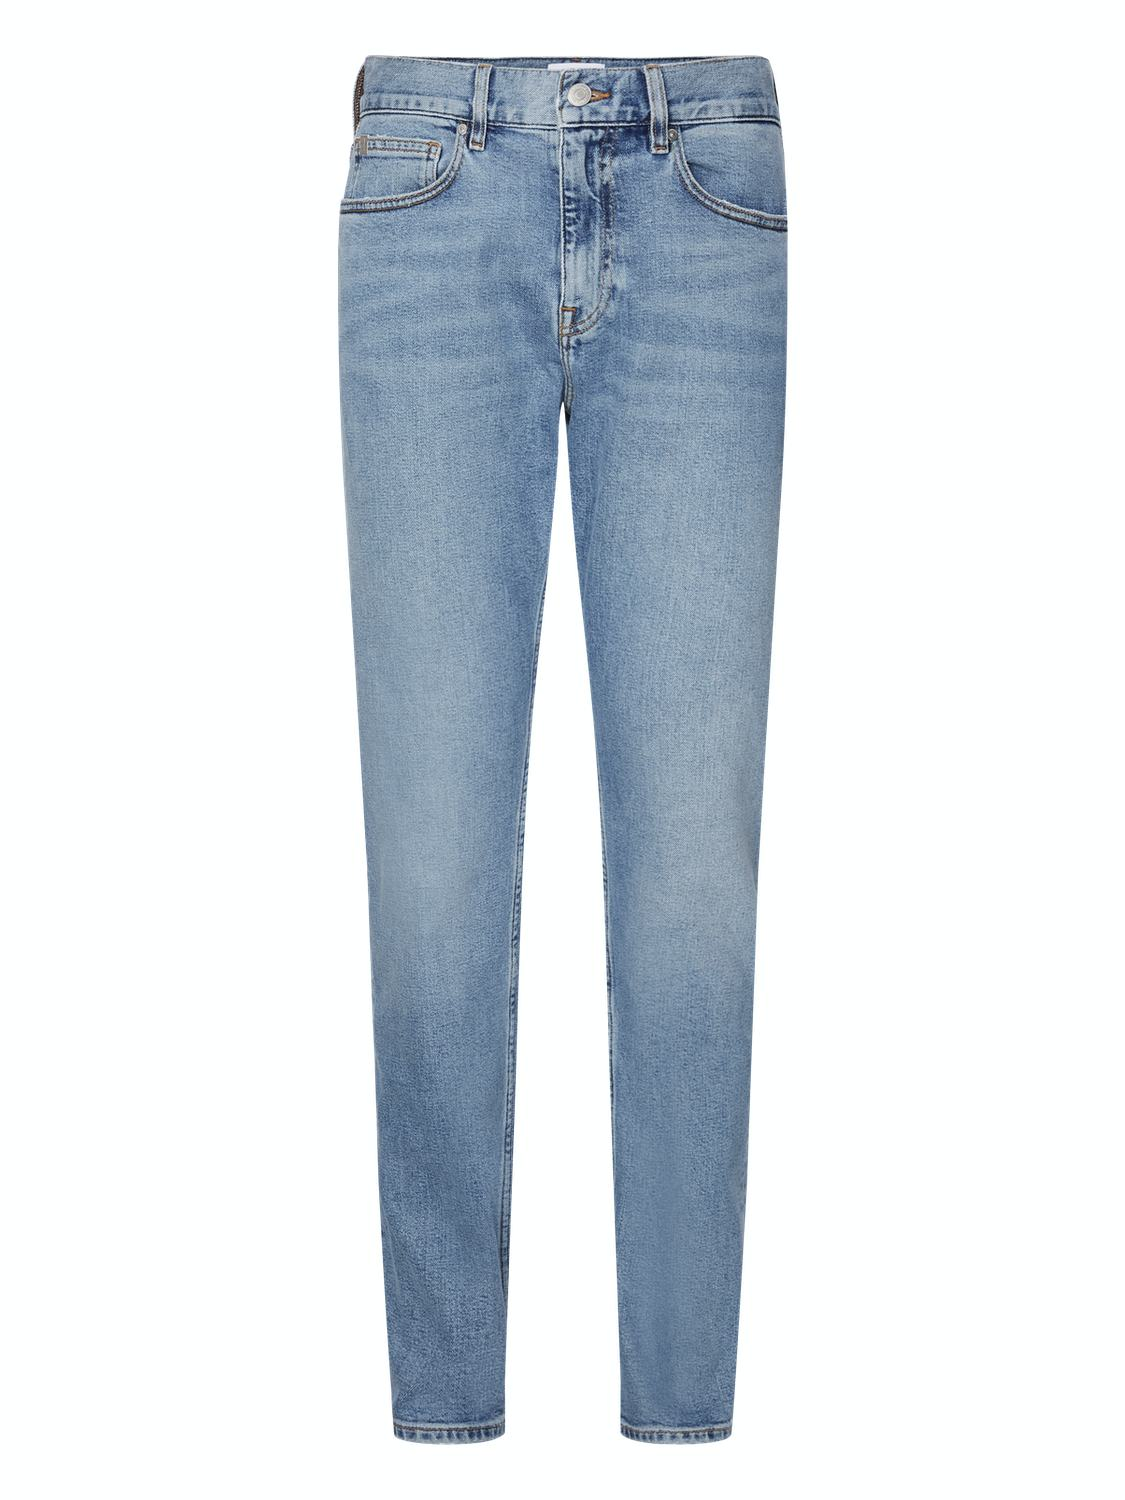 Calvin Klein - Jeans straight Fit light blue | GATE 36 Hobro